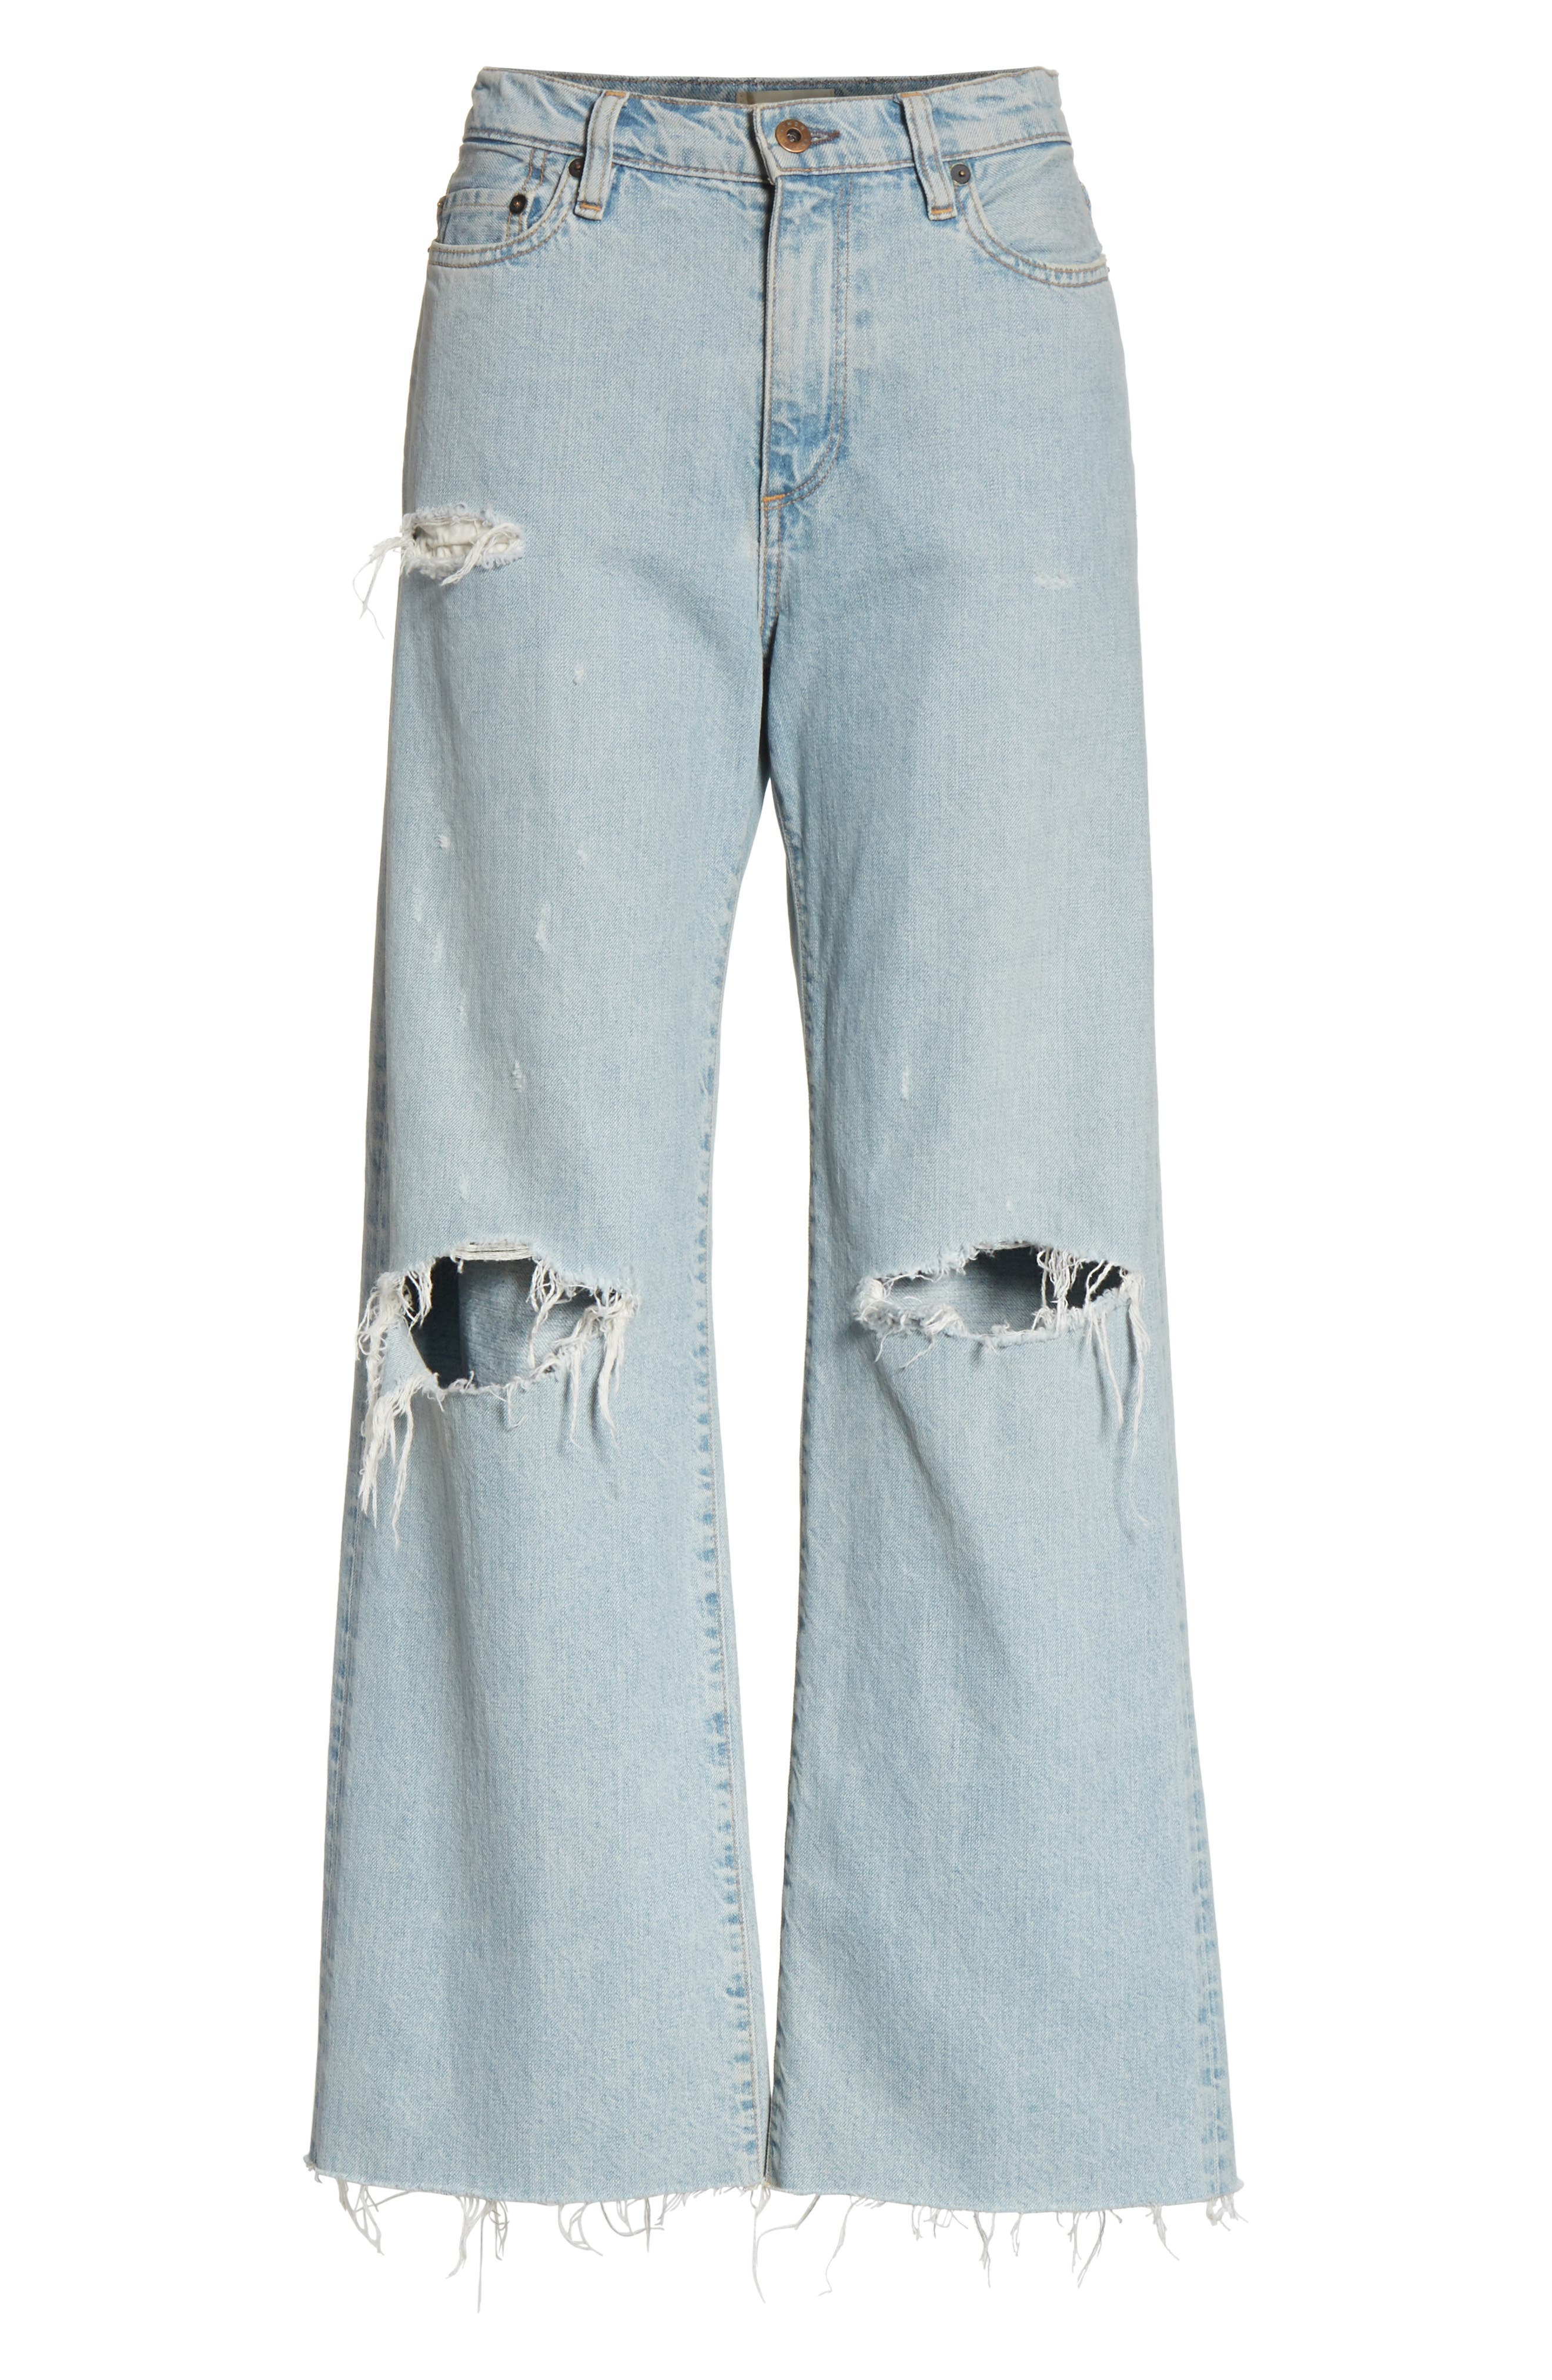 Tibbee Ripped Jeans,                             Alternate thumbnail 6, color,                             400